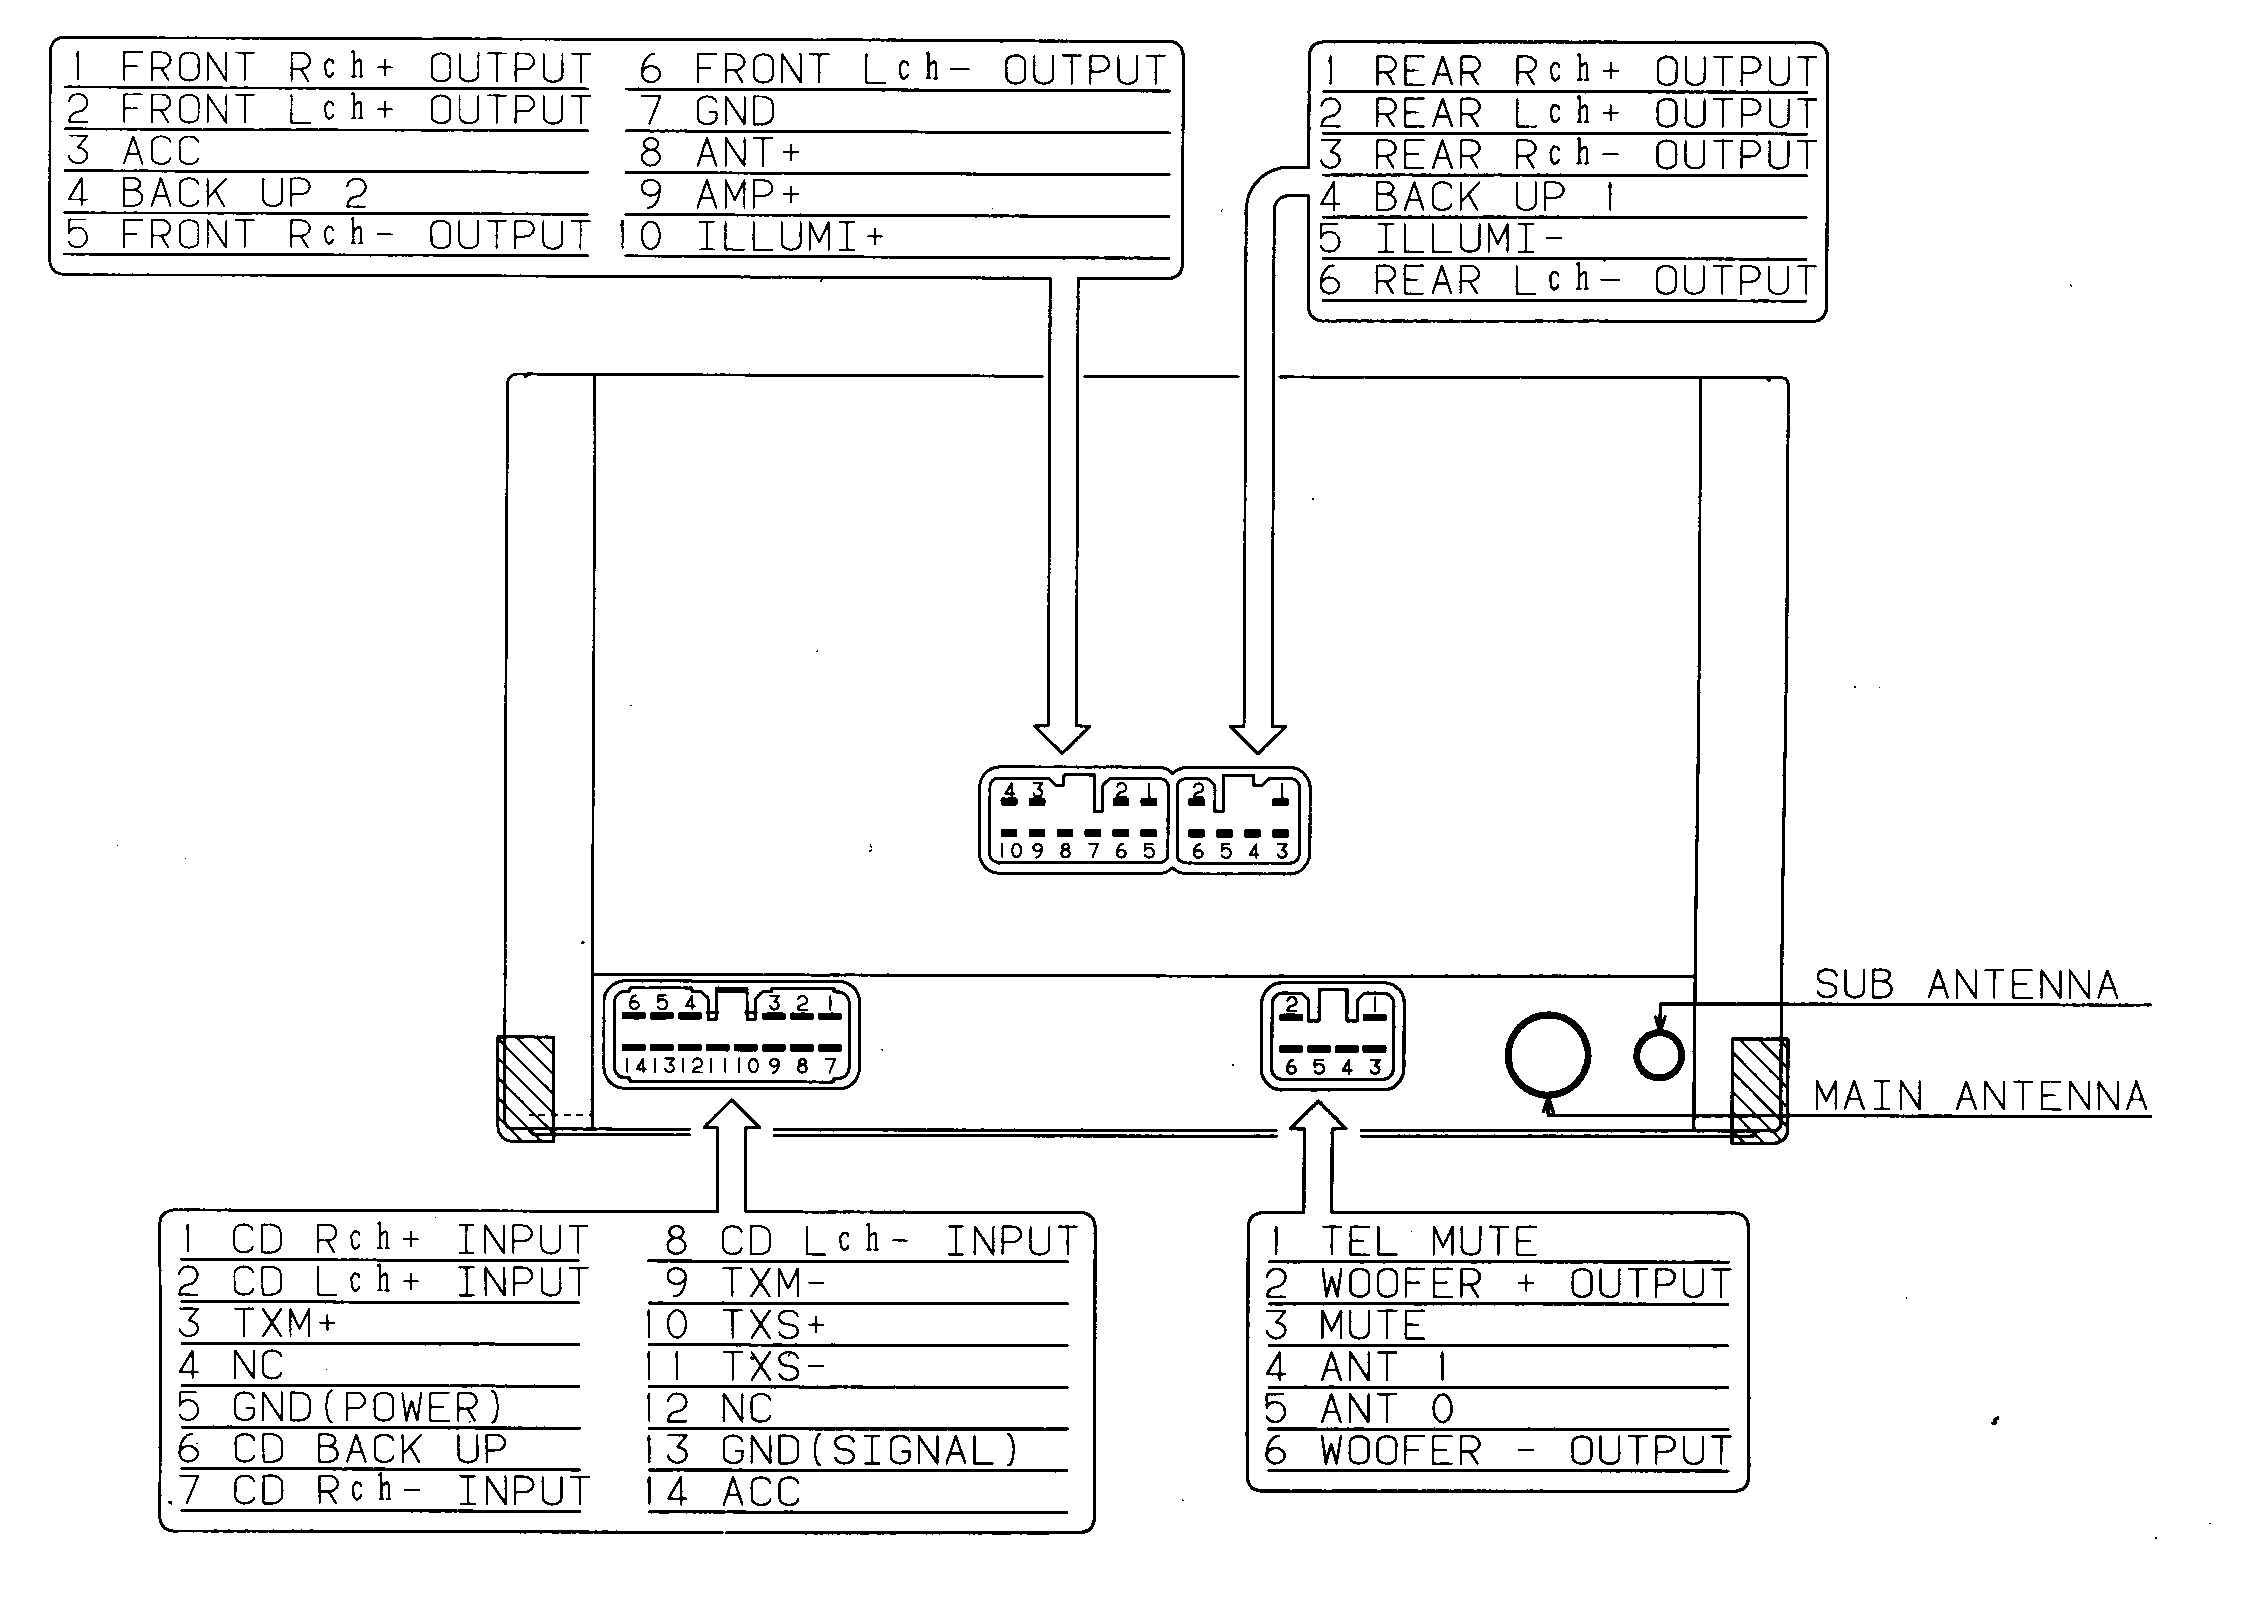 Lexus car stereo wiring diagram harness pinout connector wire lexus rx330 radio wiring diagram lexus rx330 parts diagram 2002 Lexus RX300 Interior at creativeand.co